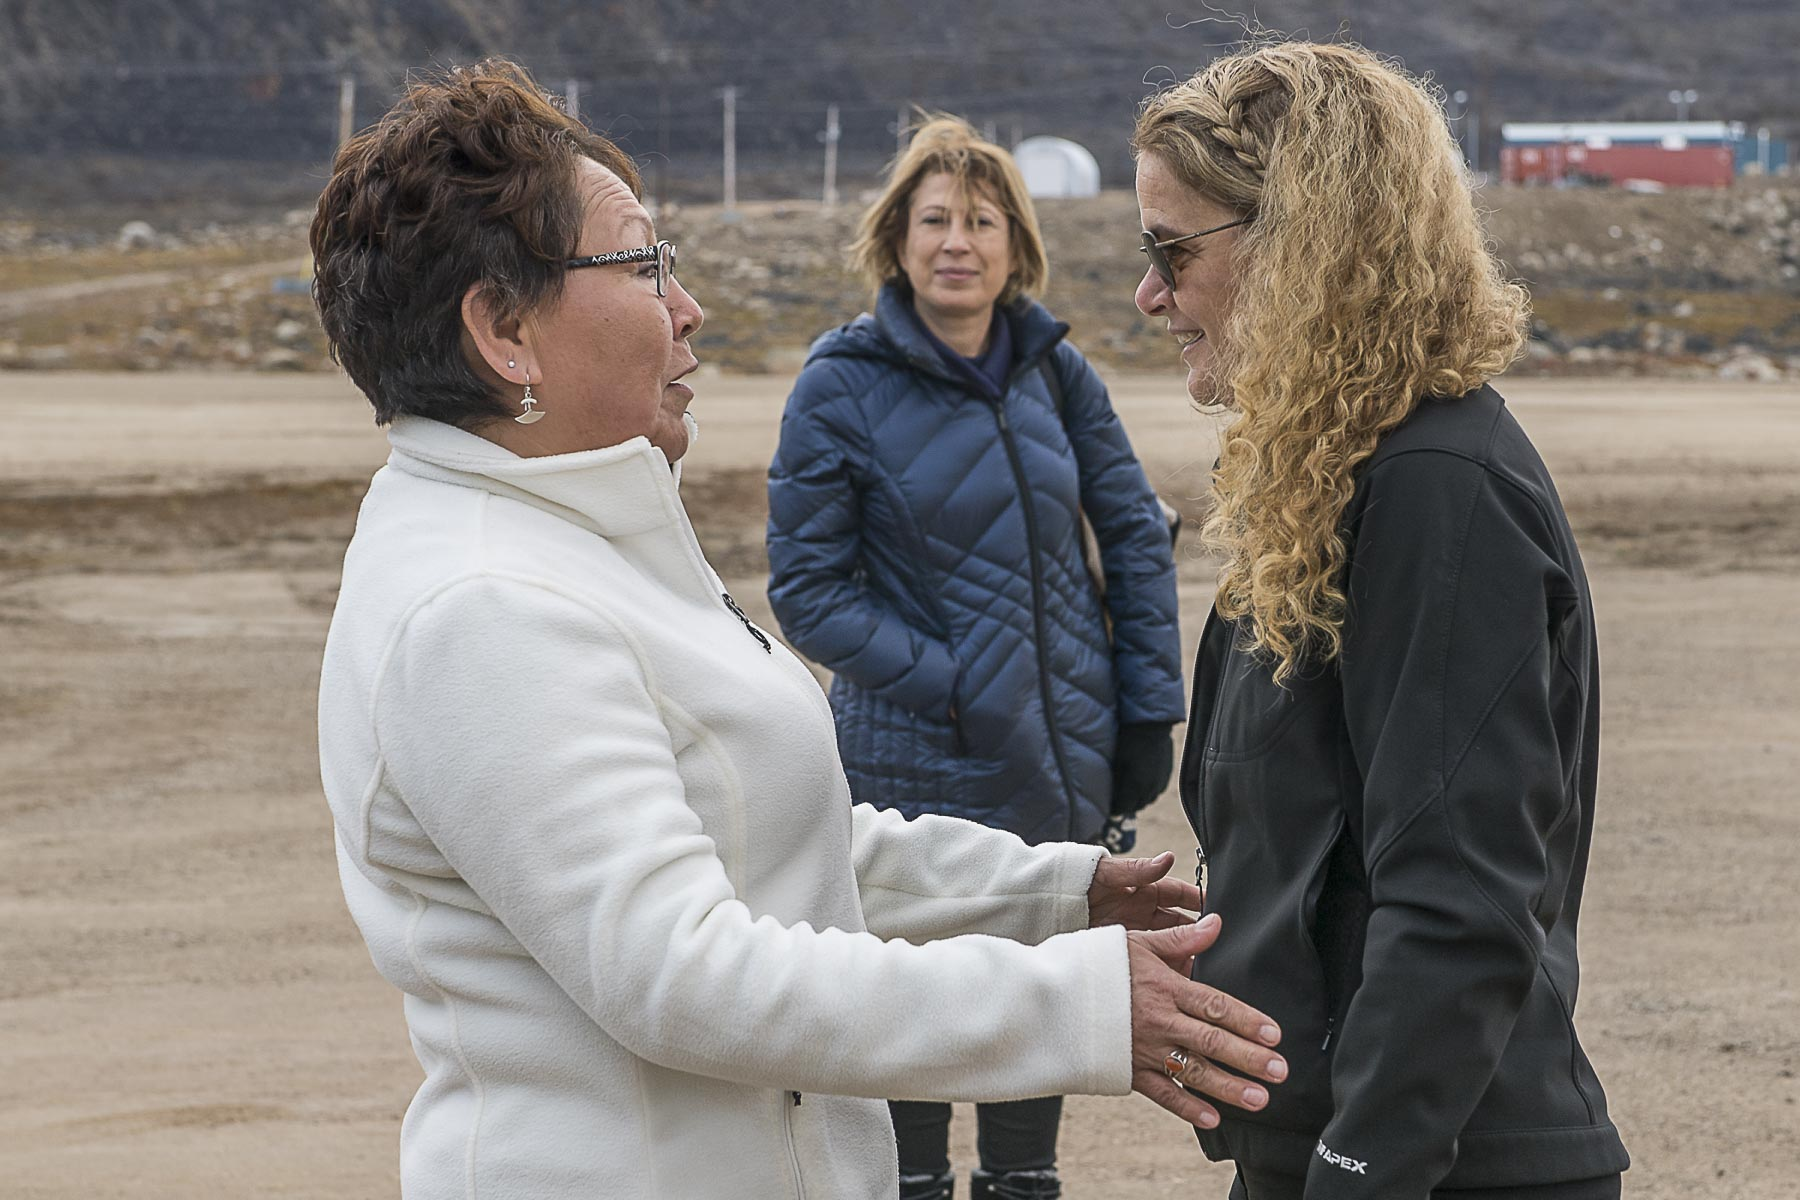 Upon arrival in Qikiqtarjuaq, Her Excellency was greeted by Her Worship Mary Killiktee, Mayor of Qikiqtarjuaq.